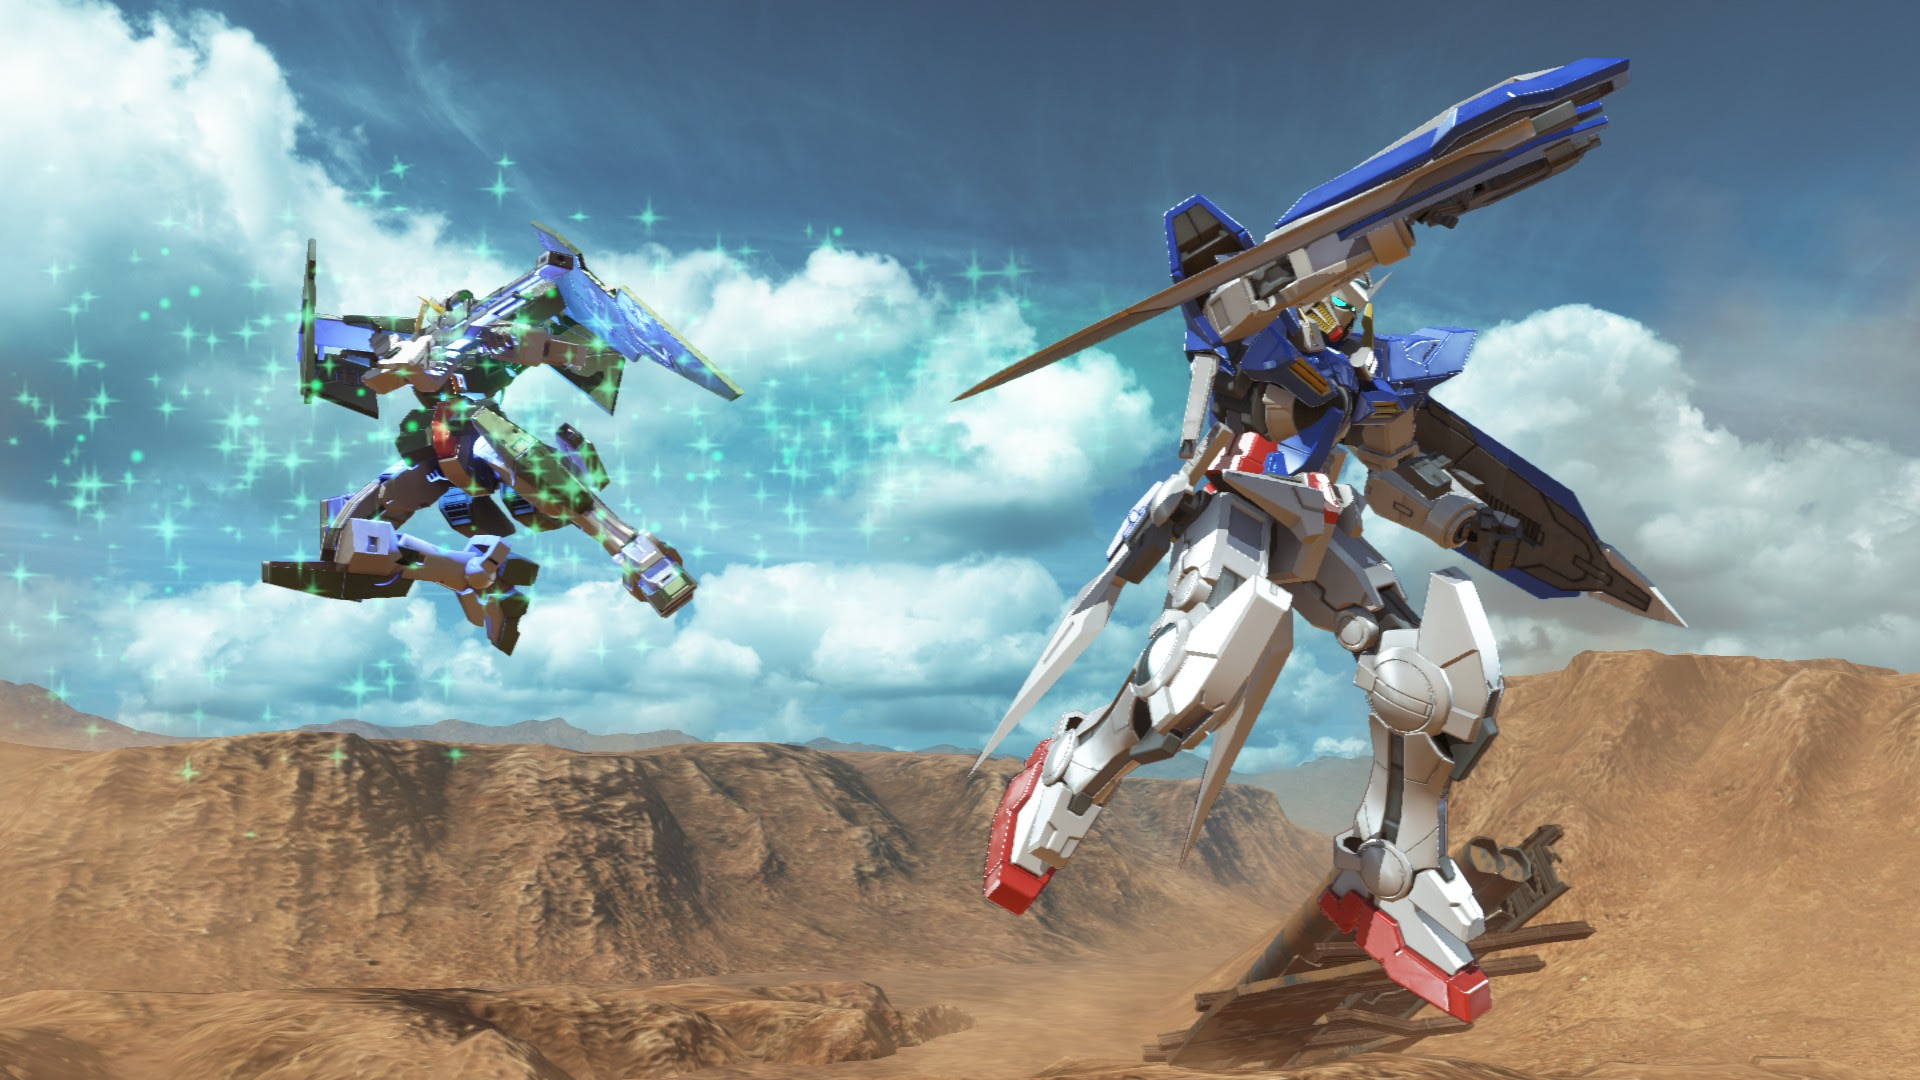 Gundam Versus, ARMS, and Radiant Historia remake were the biggest Japan releases this past month screenshot